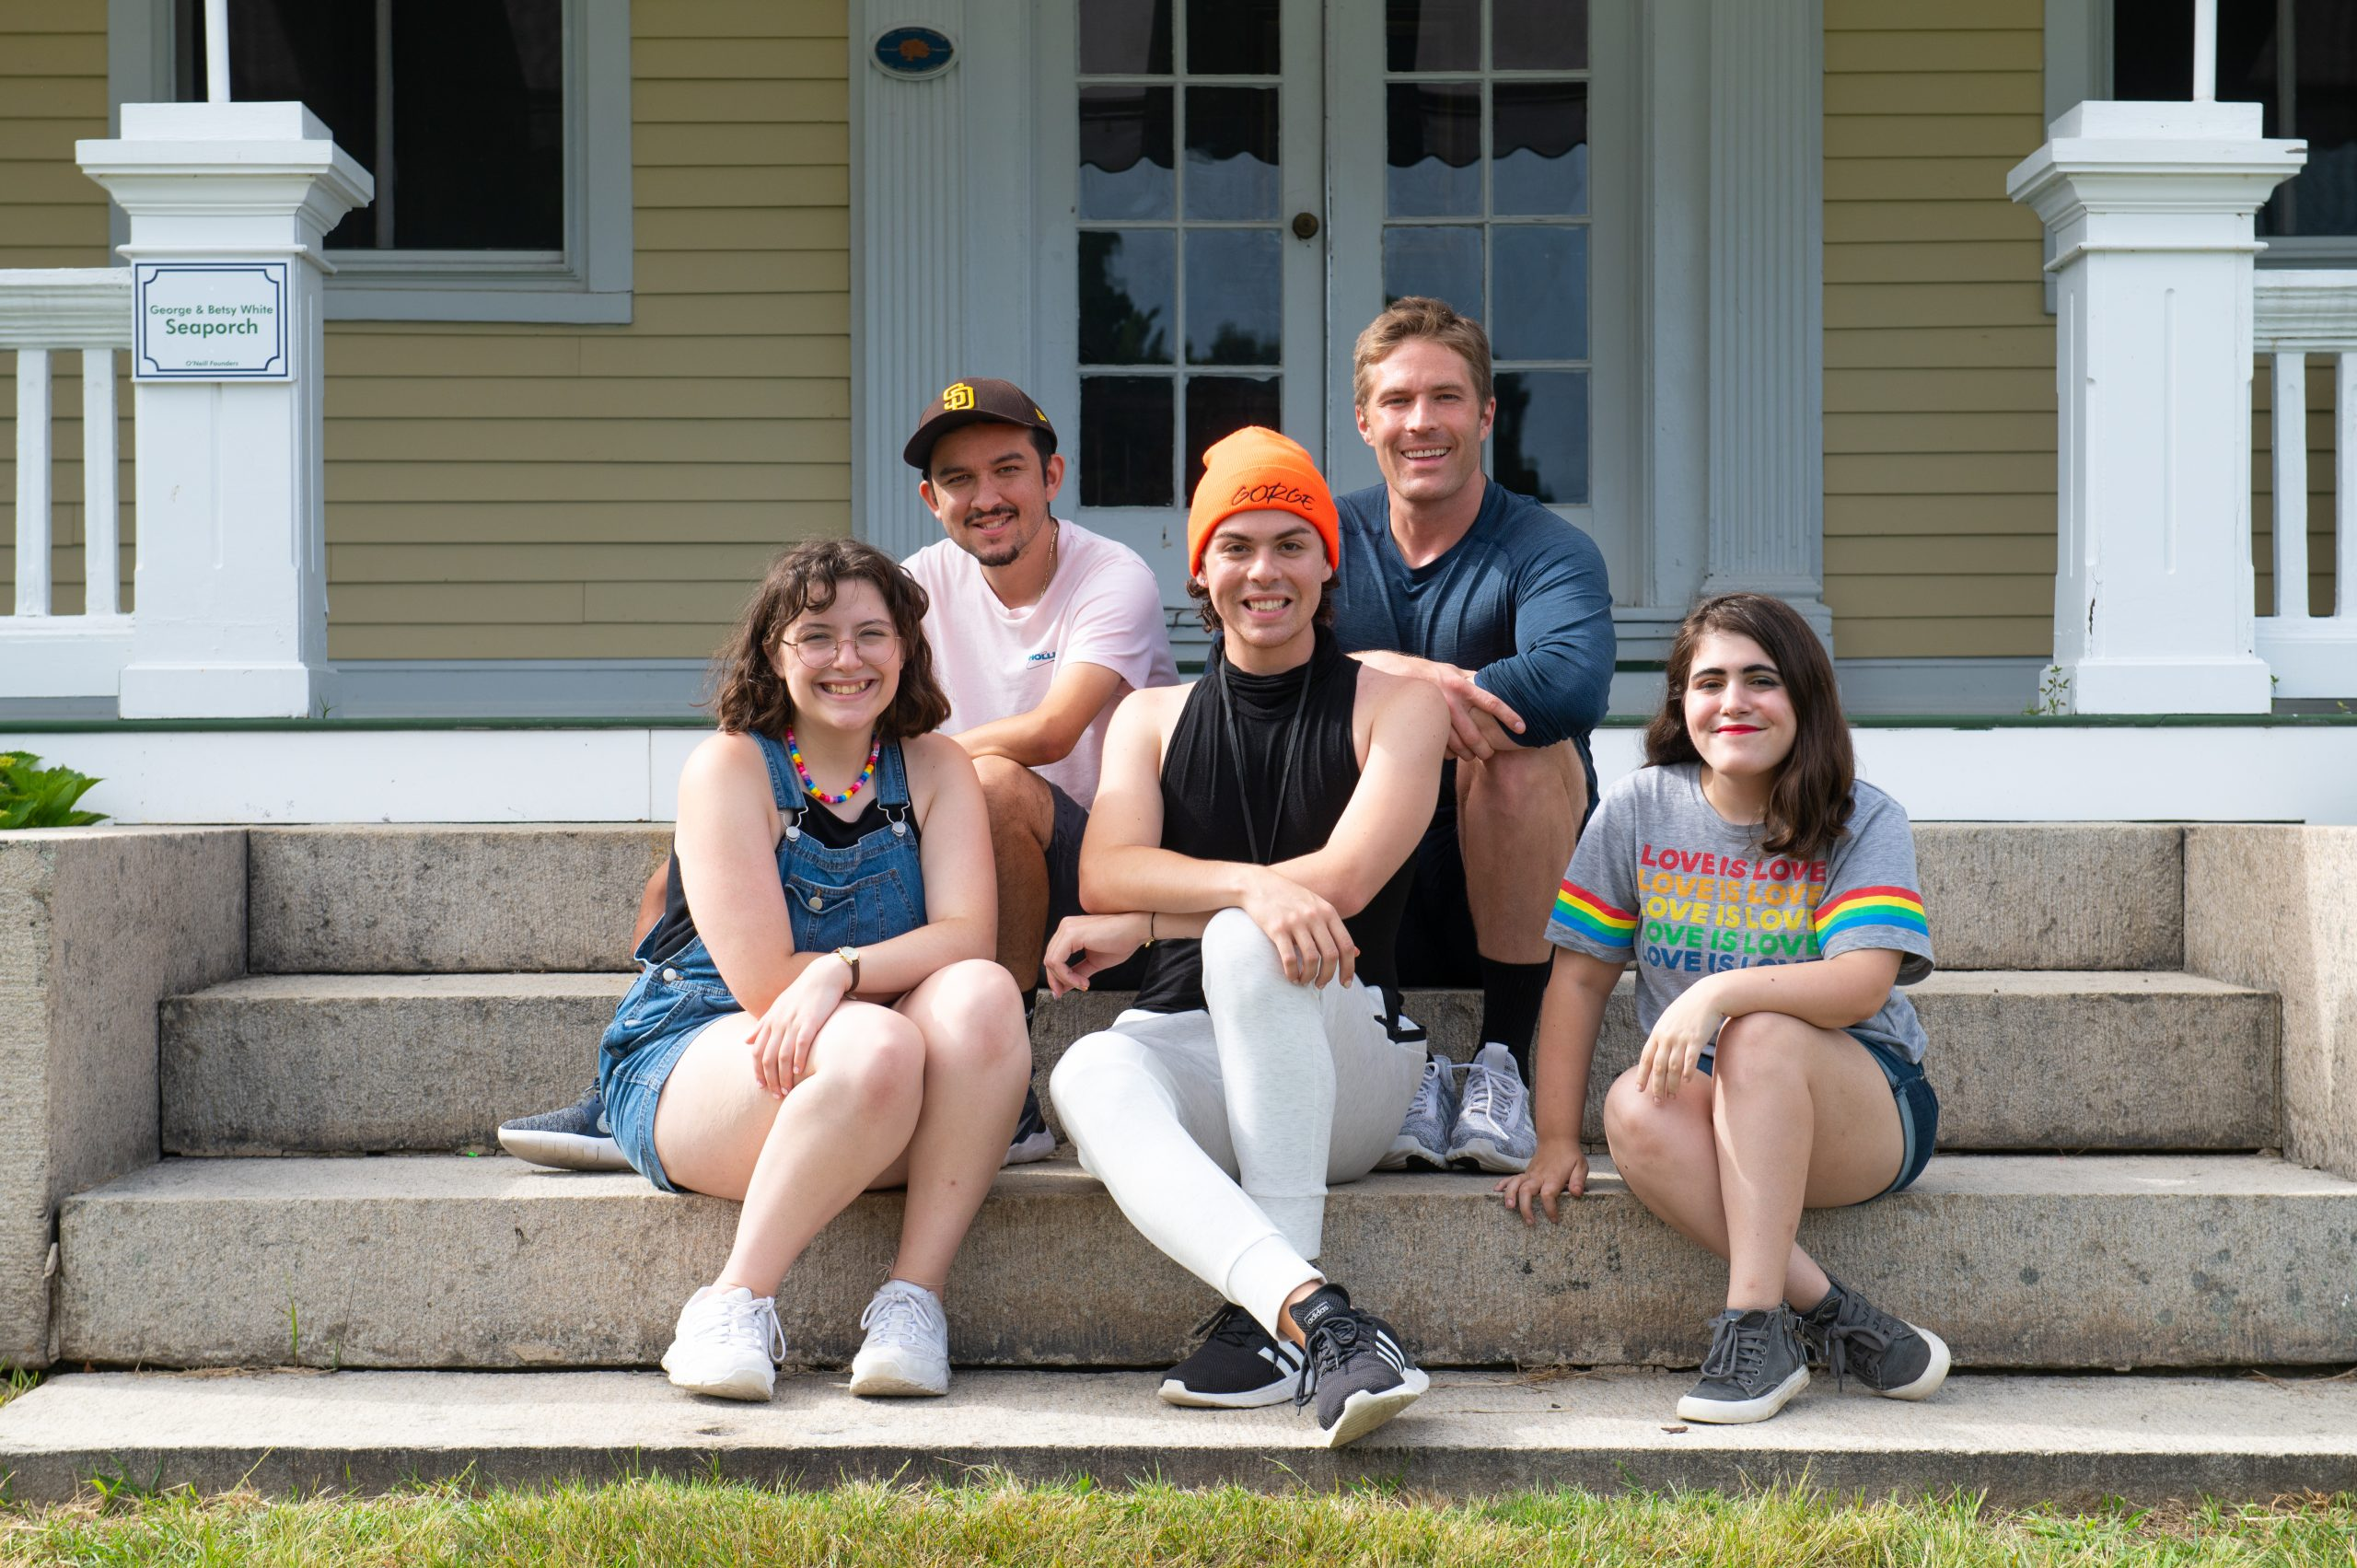 Gage Pipkin, center, is one of five playwrights. Photo by Isaak Berliner, resident photographer for the O'Neill Center.